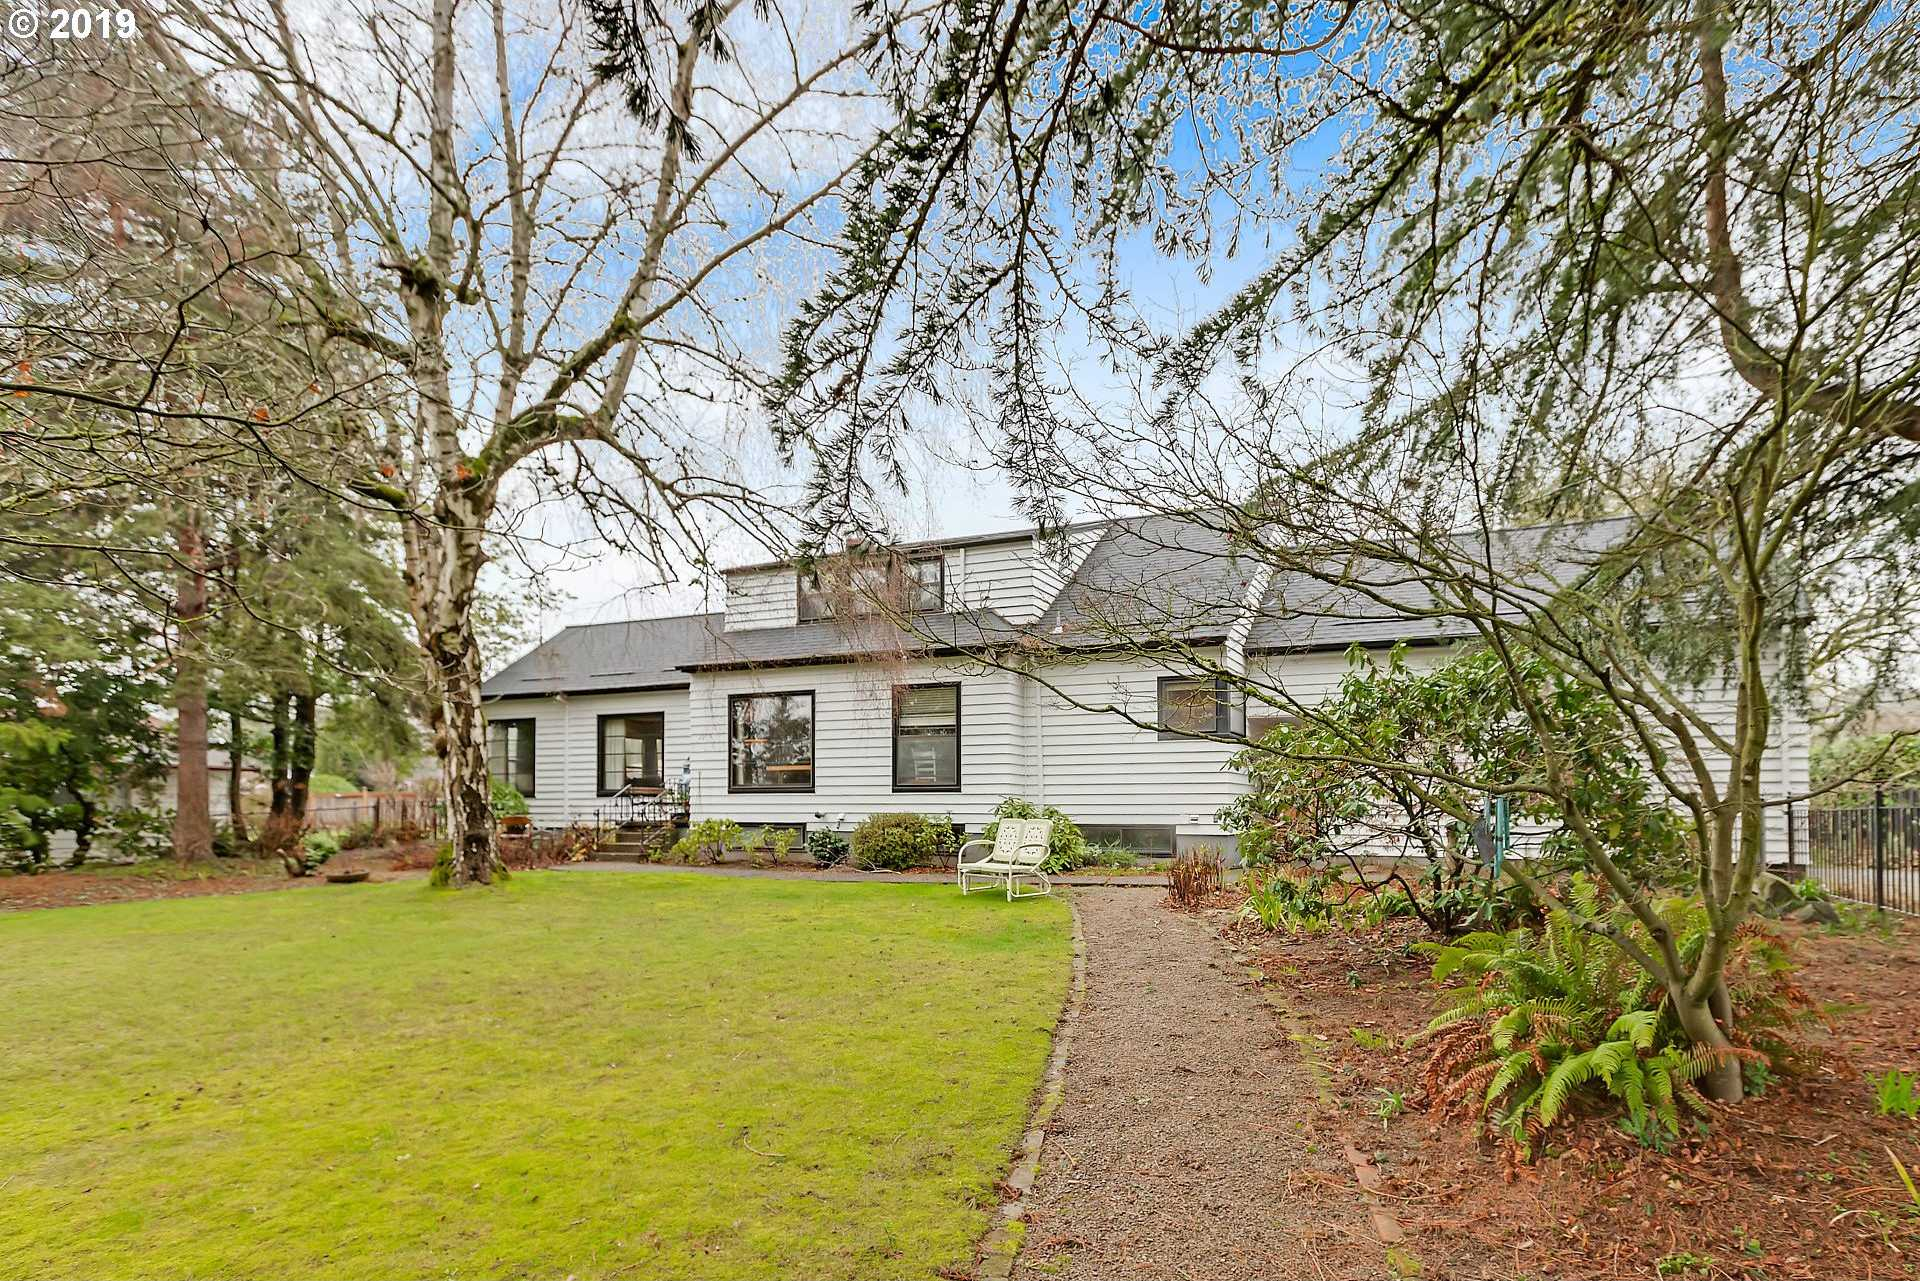 $550,000 - 5Br/3Ba -  for Sale in Concord Terrace, Milwaukie